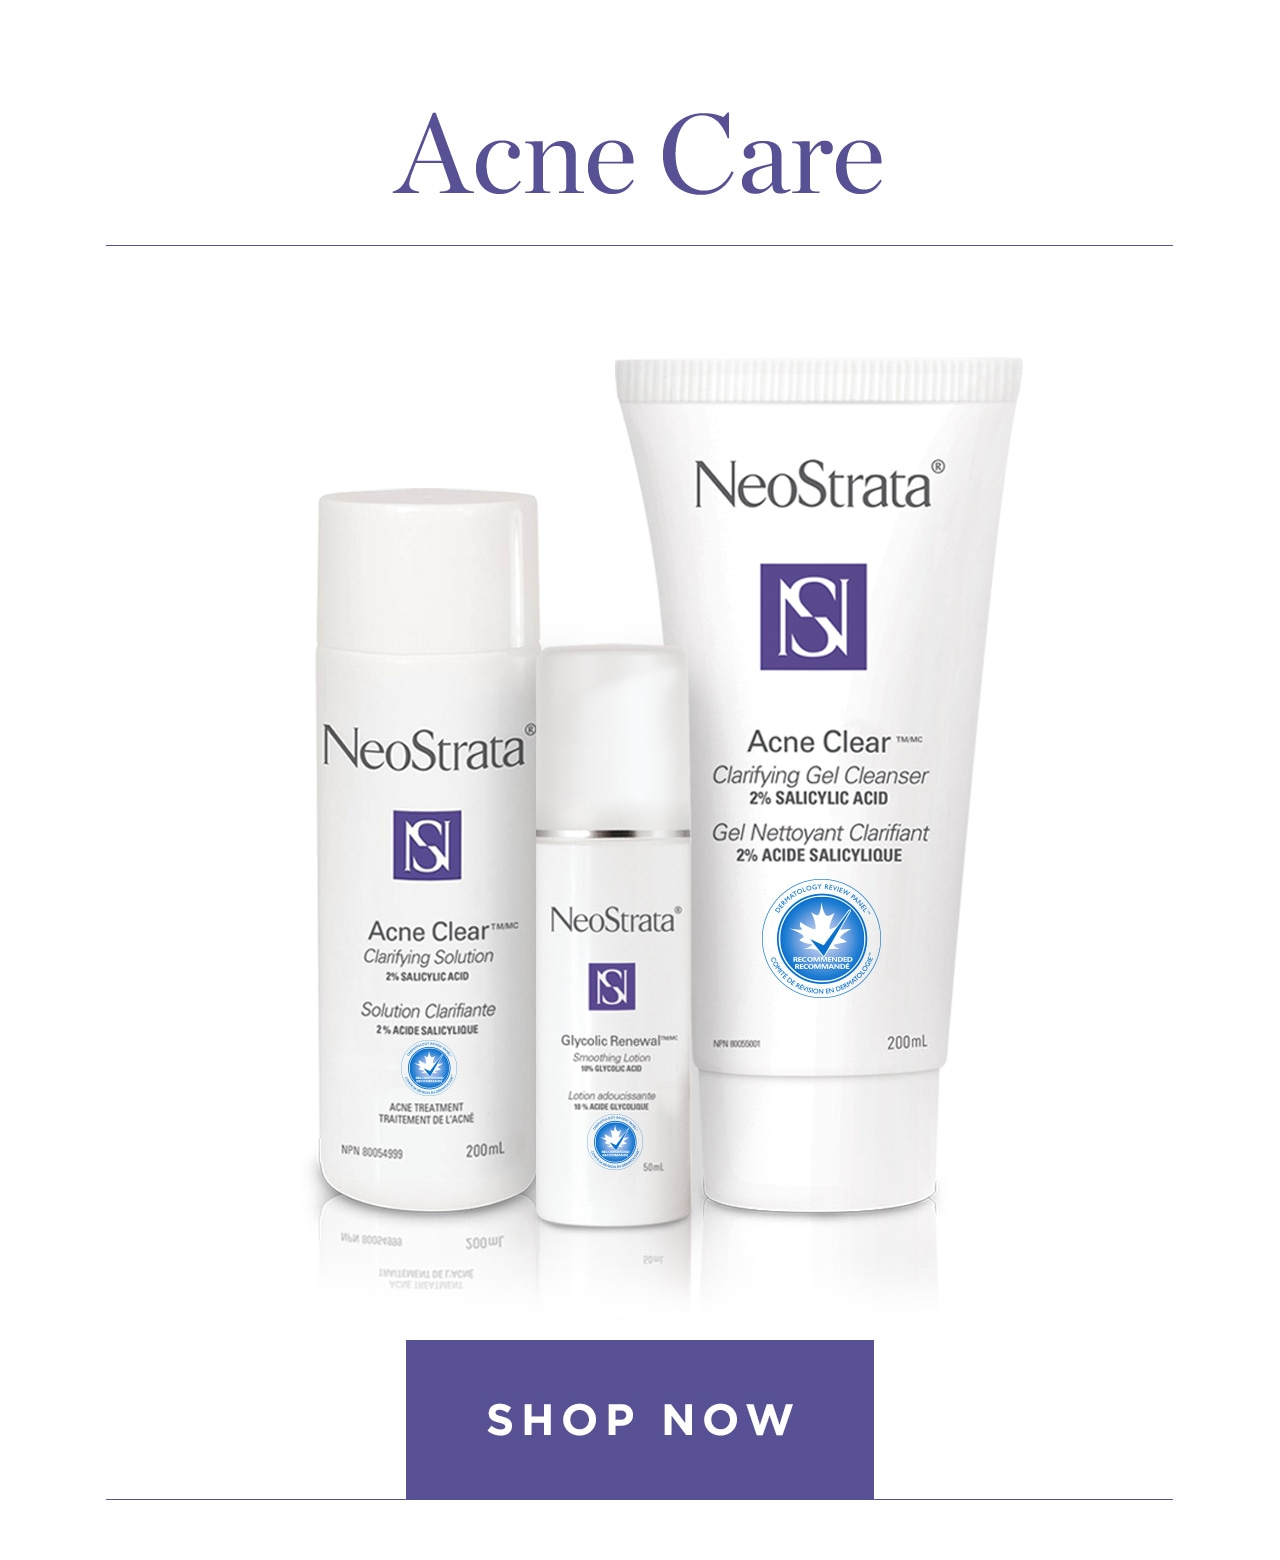 Acne Care Shop Now